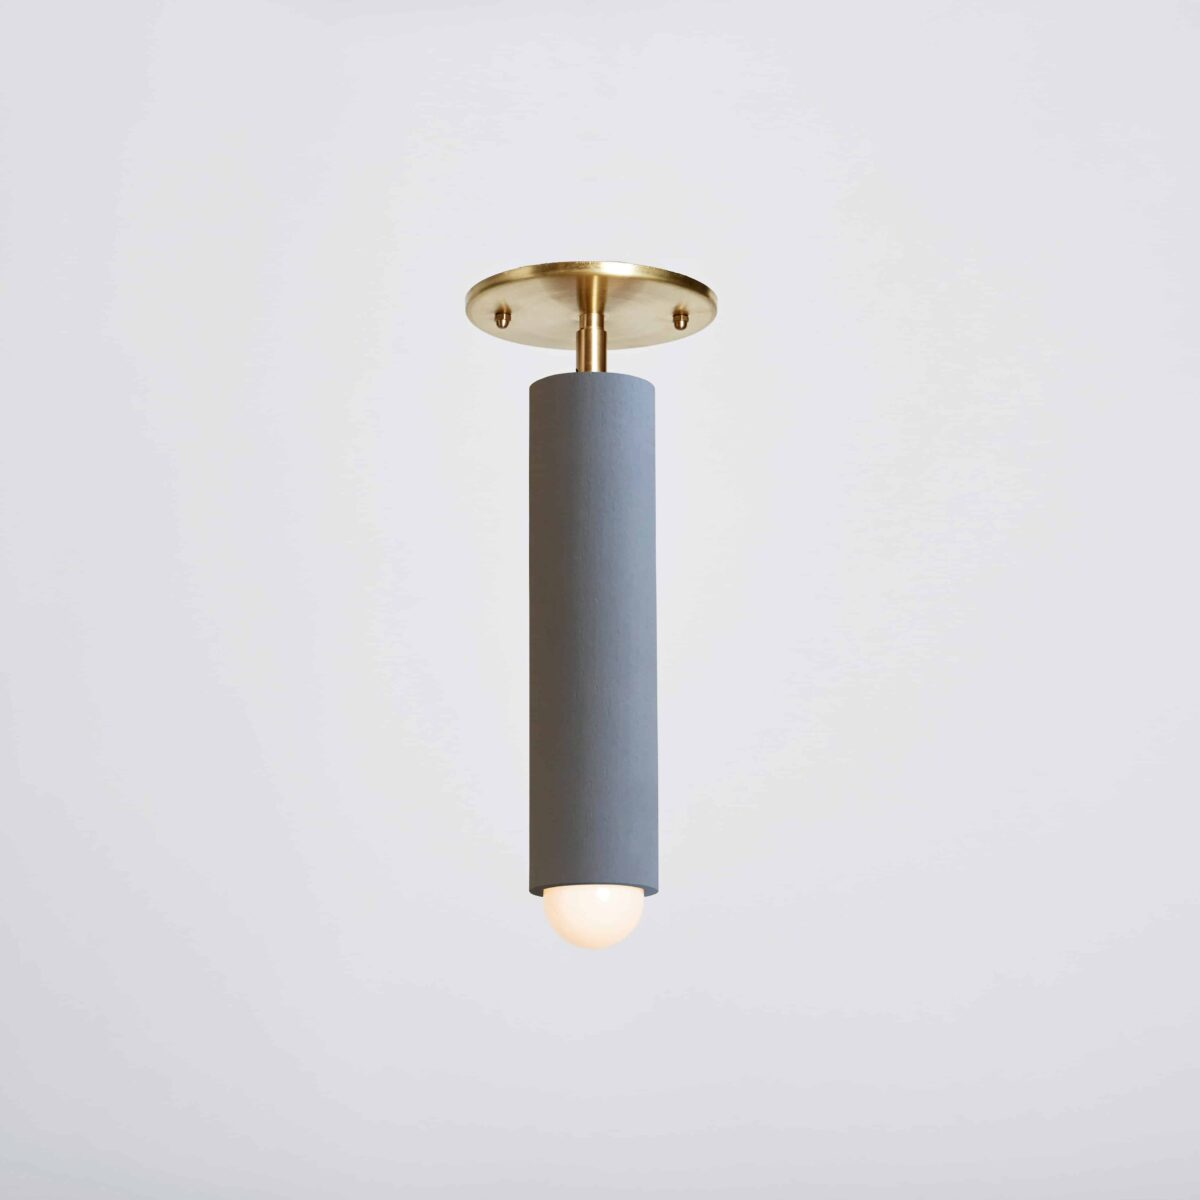 Lodge Flushmount_Painted_On_Gray-Hewn Brass